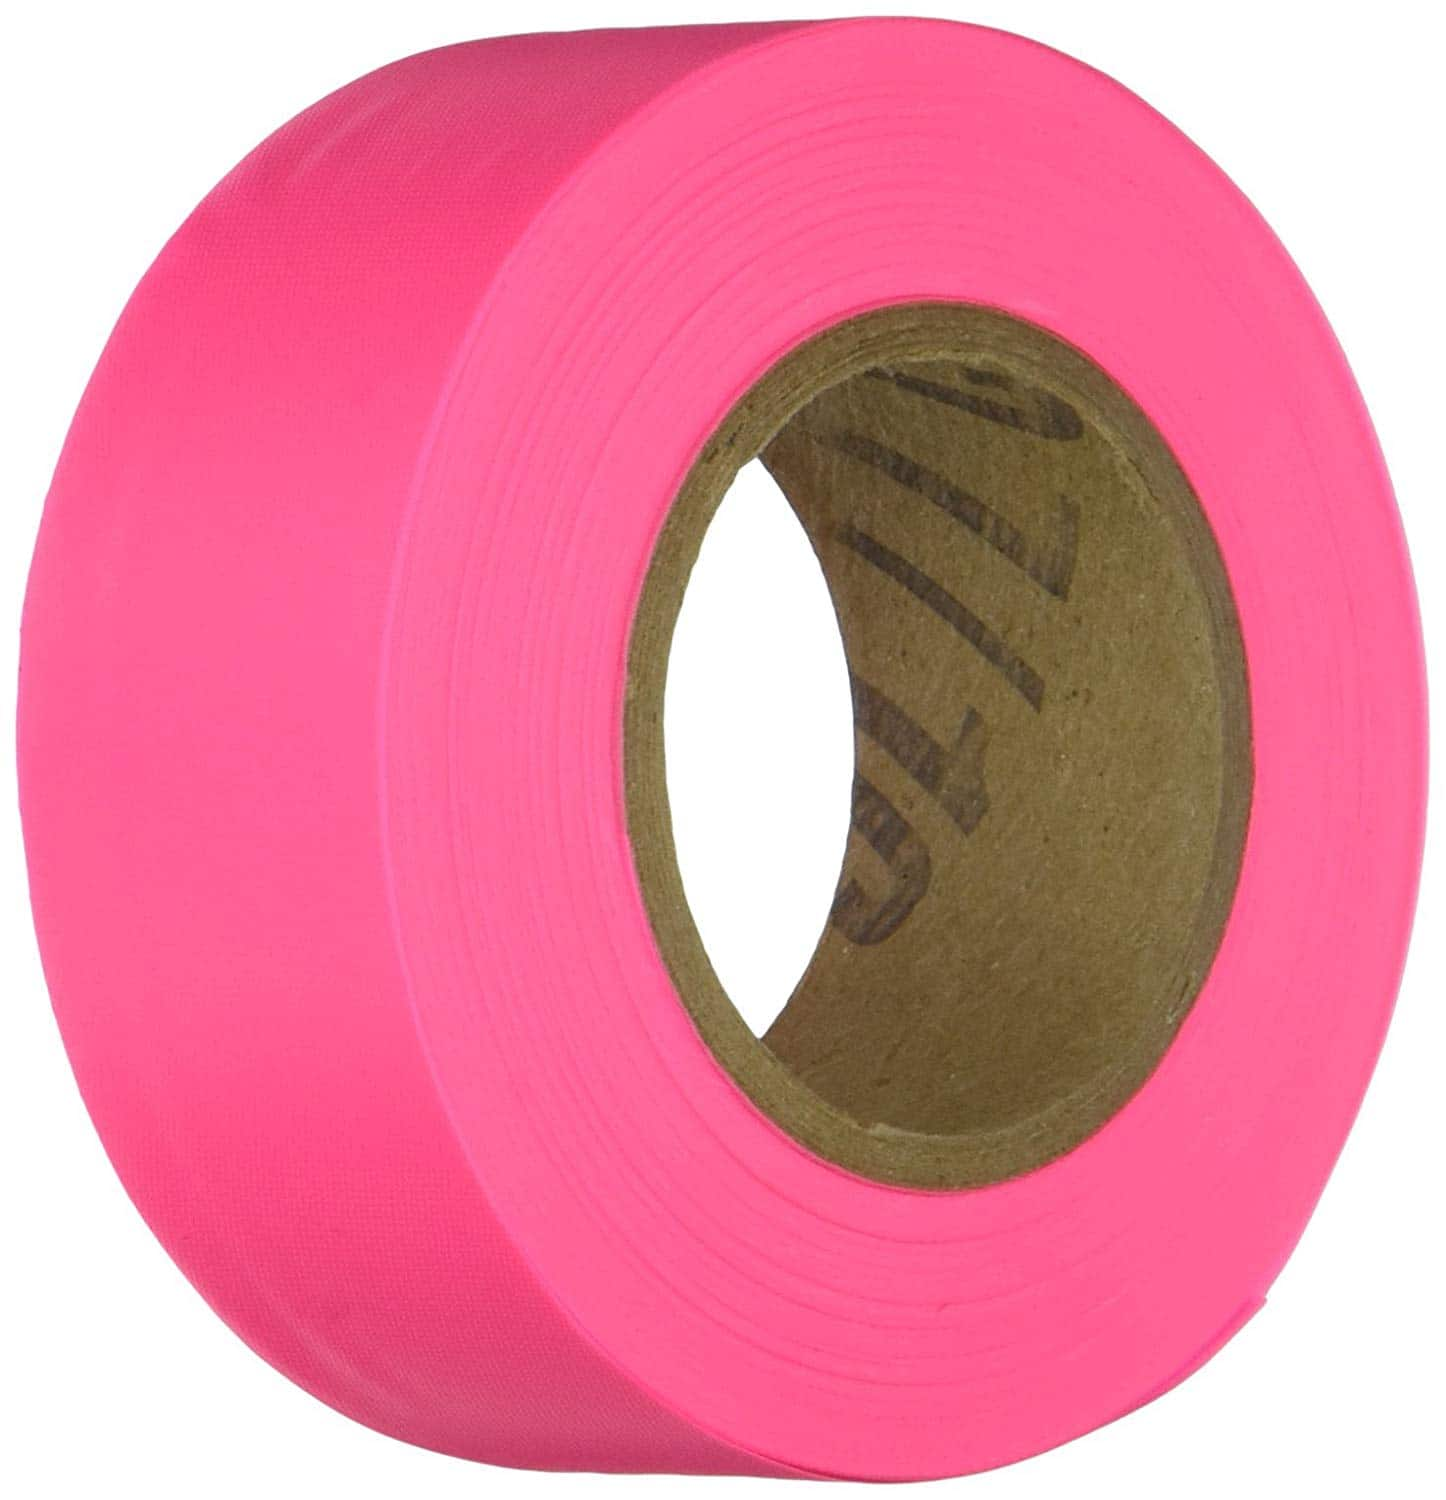 IRWIN Tools STRAIT-LINE Flagging Tape, 150-foot, Glo-Pink (65603) - $1.49 at Amazon  free shipping with prime